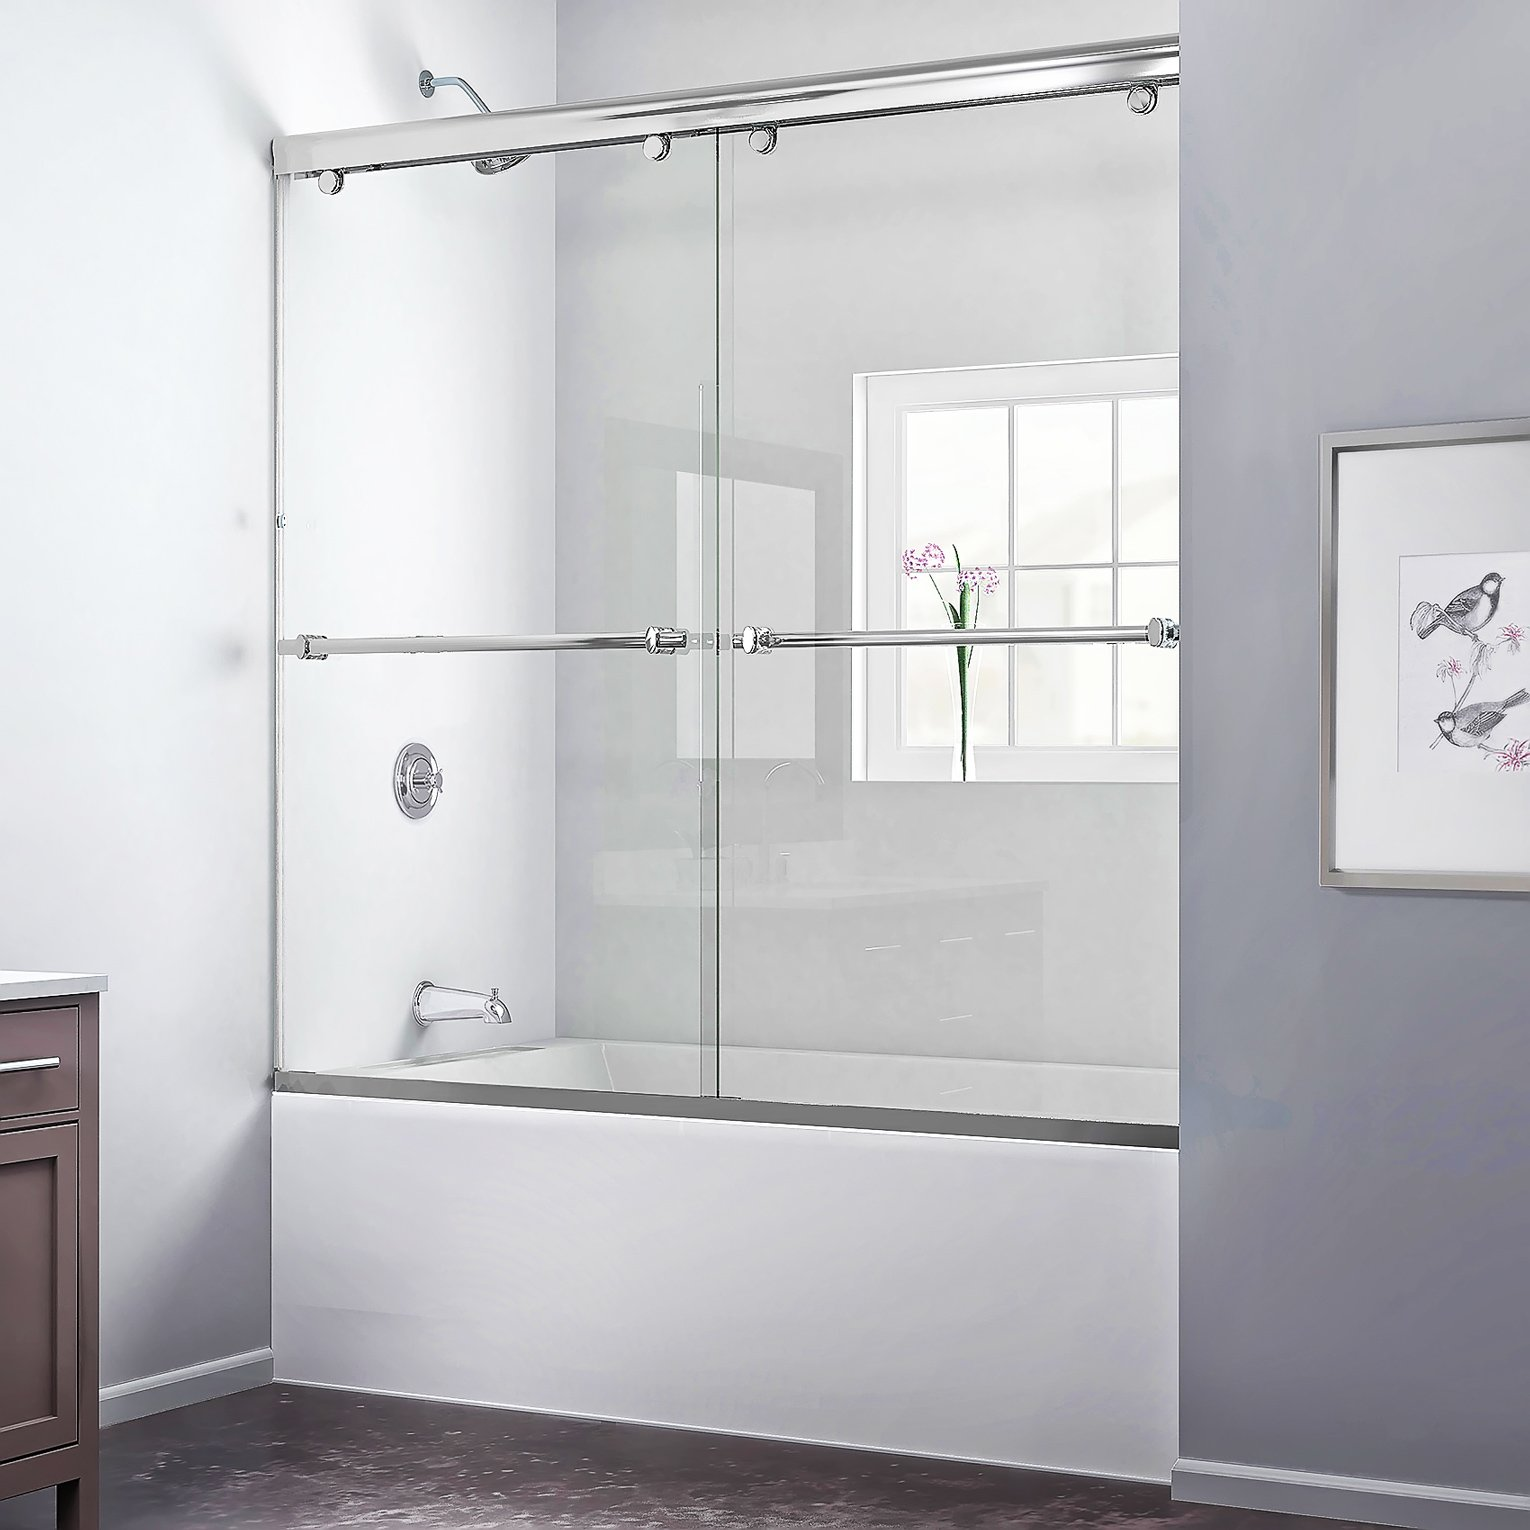 DreamLine Charisma 28-32 in. D x 56-60 in. W Kit, with Bypass Sliding Tub Door in Chrome and White Acrylic Backwalls by DreamLine